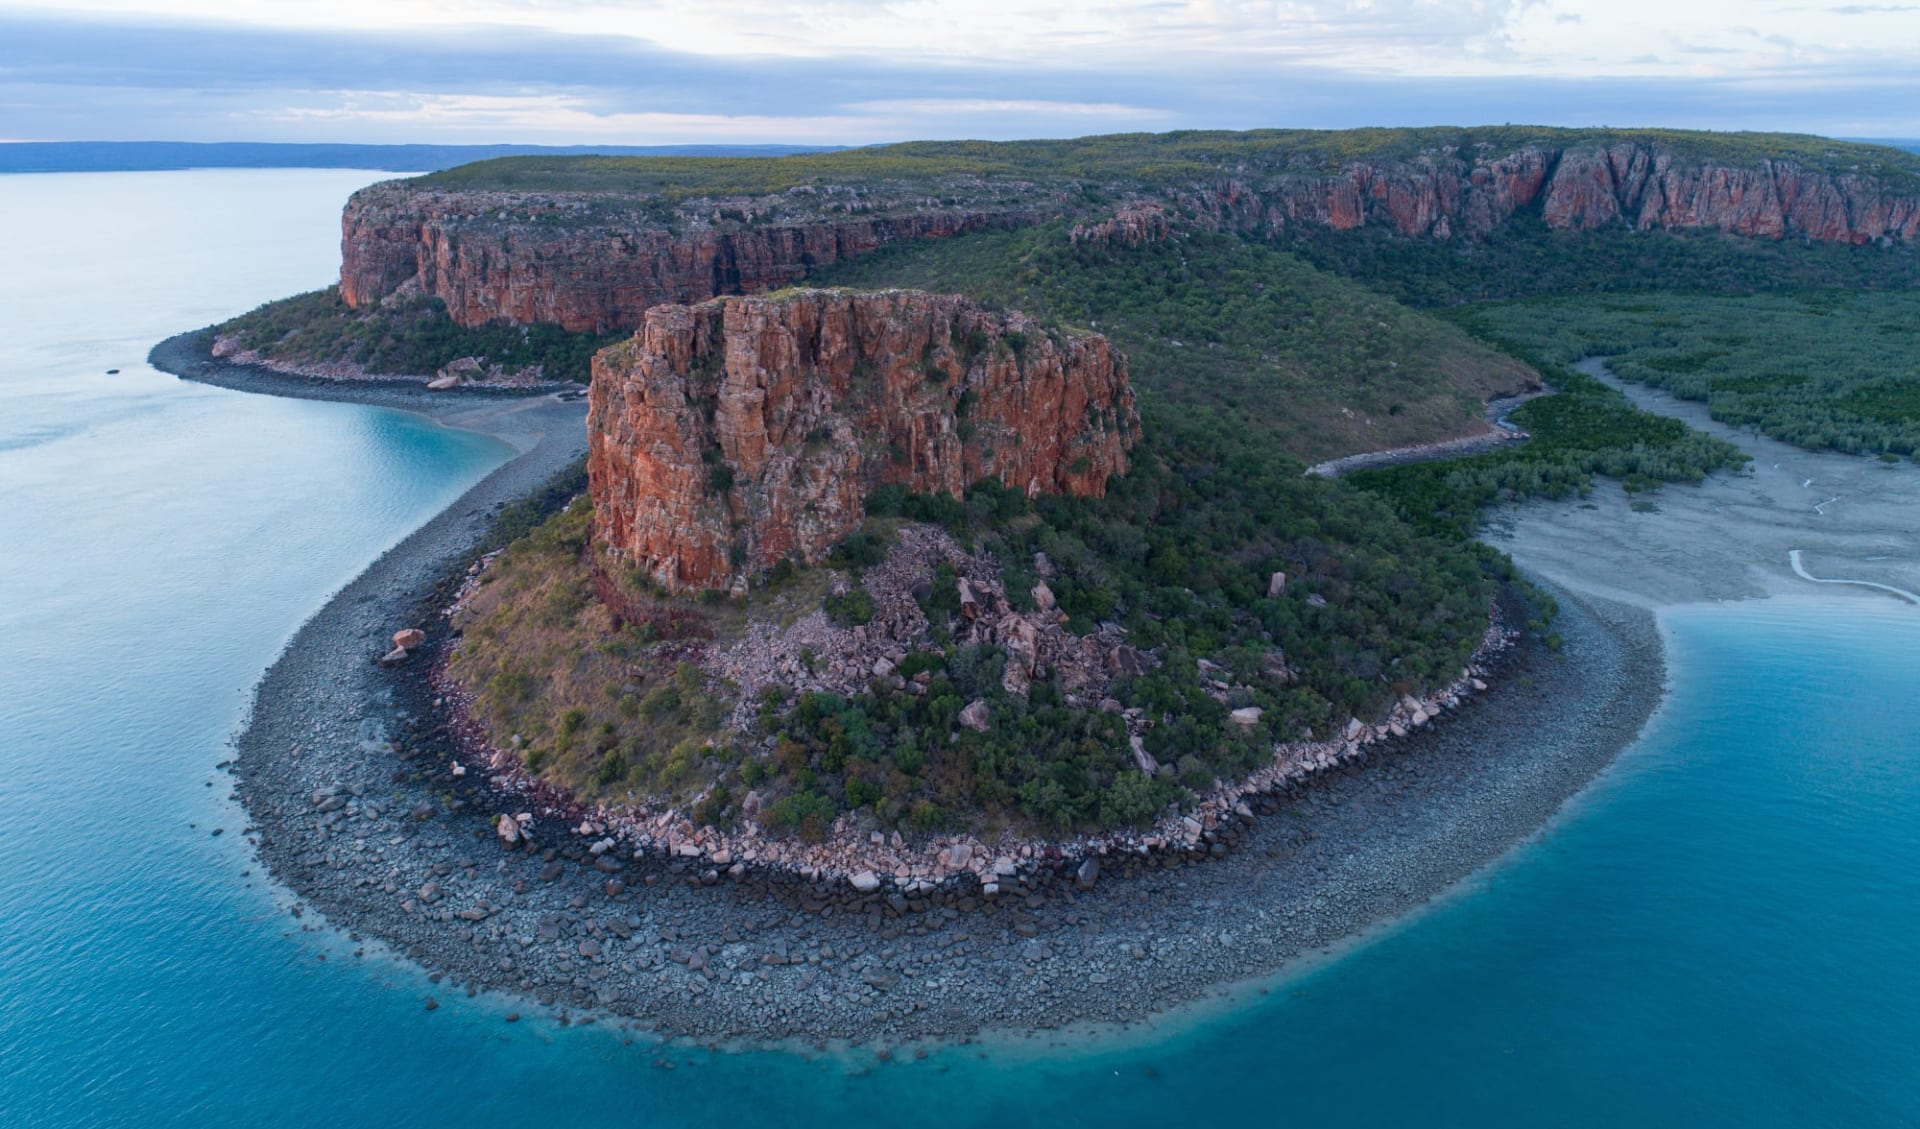 Expeditions-Kreuzfahrten Kimberley ab Darwin: Raft Point Kimberley Coast